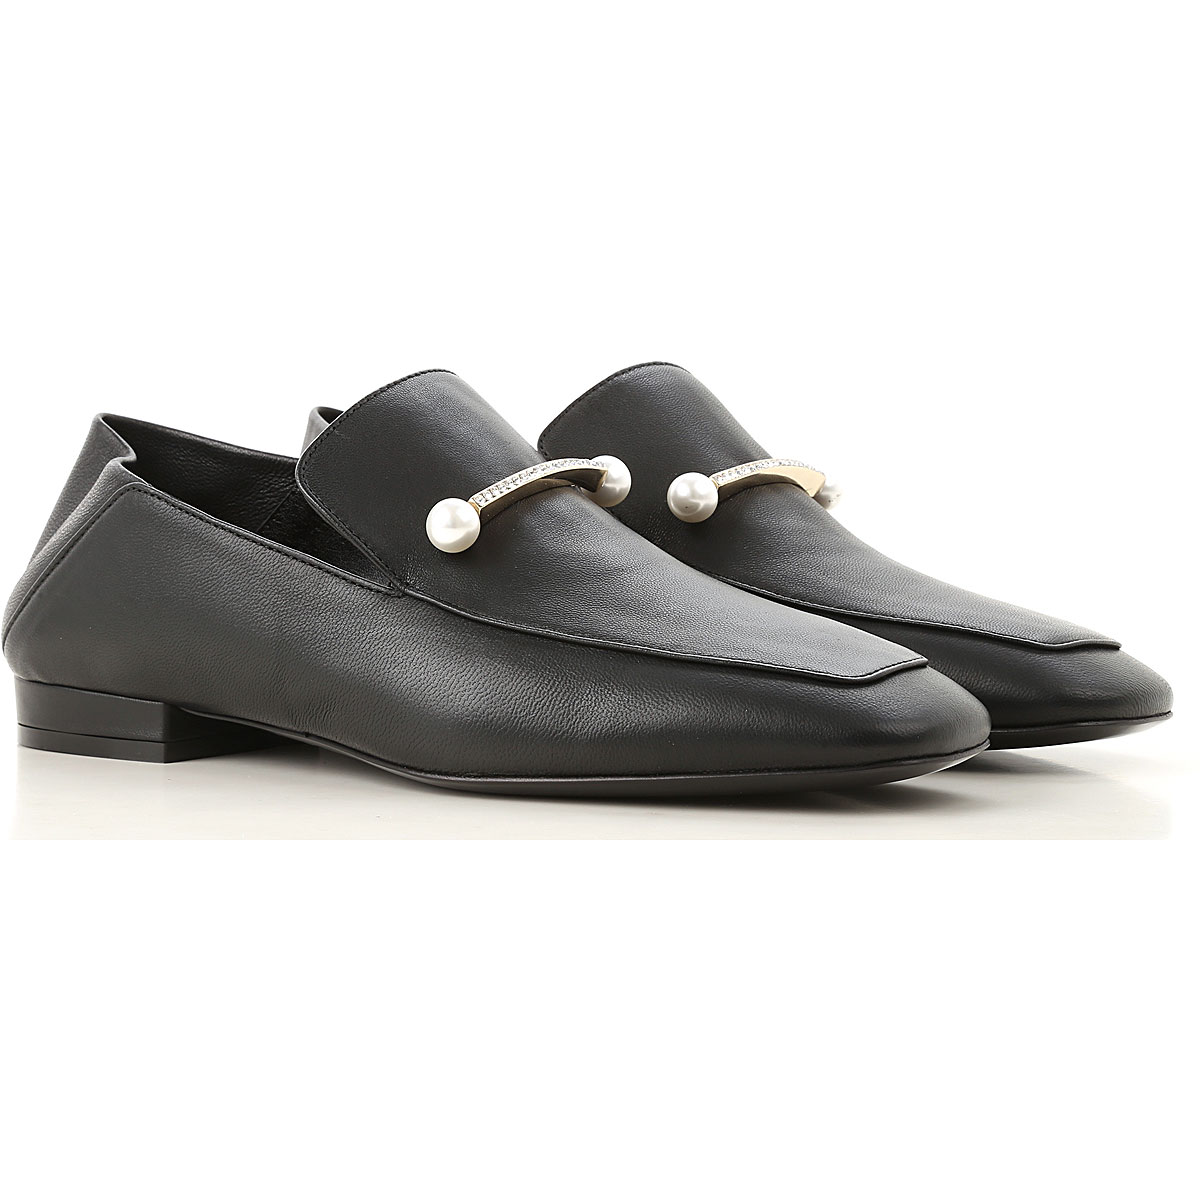 Image of Coliac Loafers for Women, Black, Leather, 2017, 5 6 6.5 7 8 9